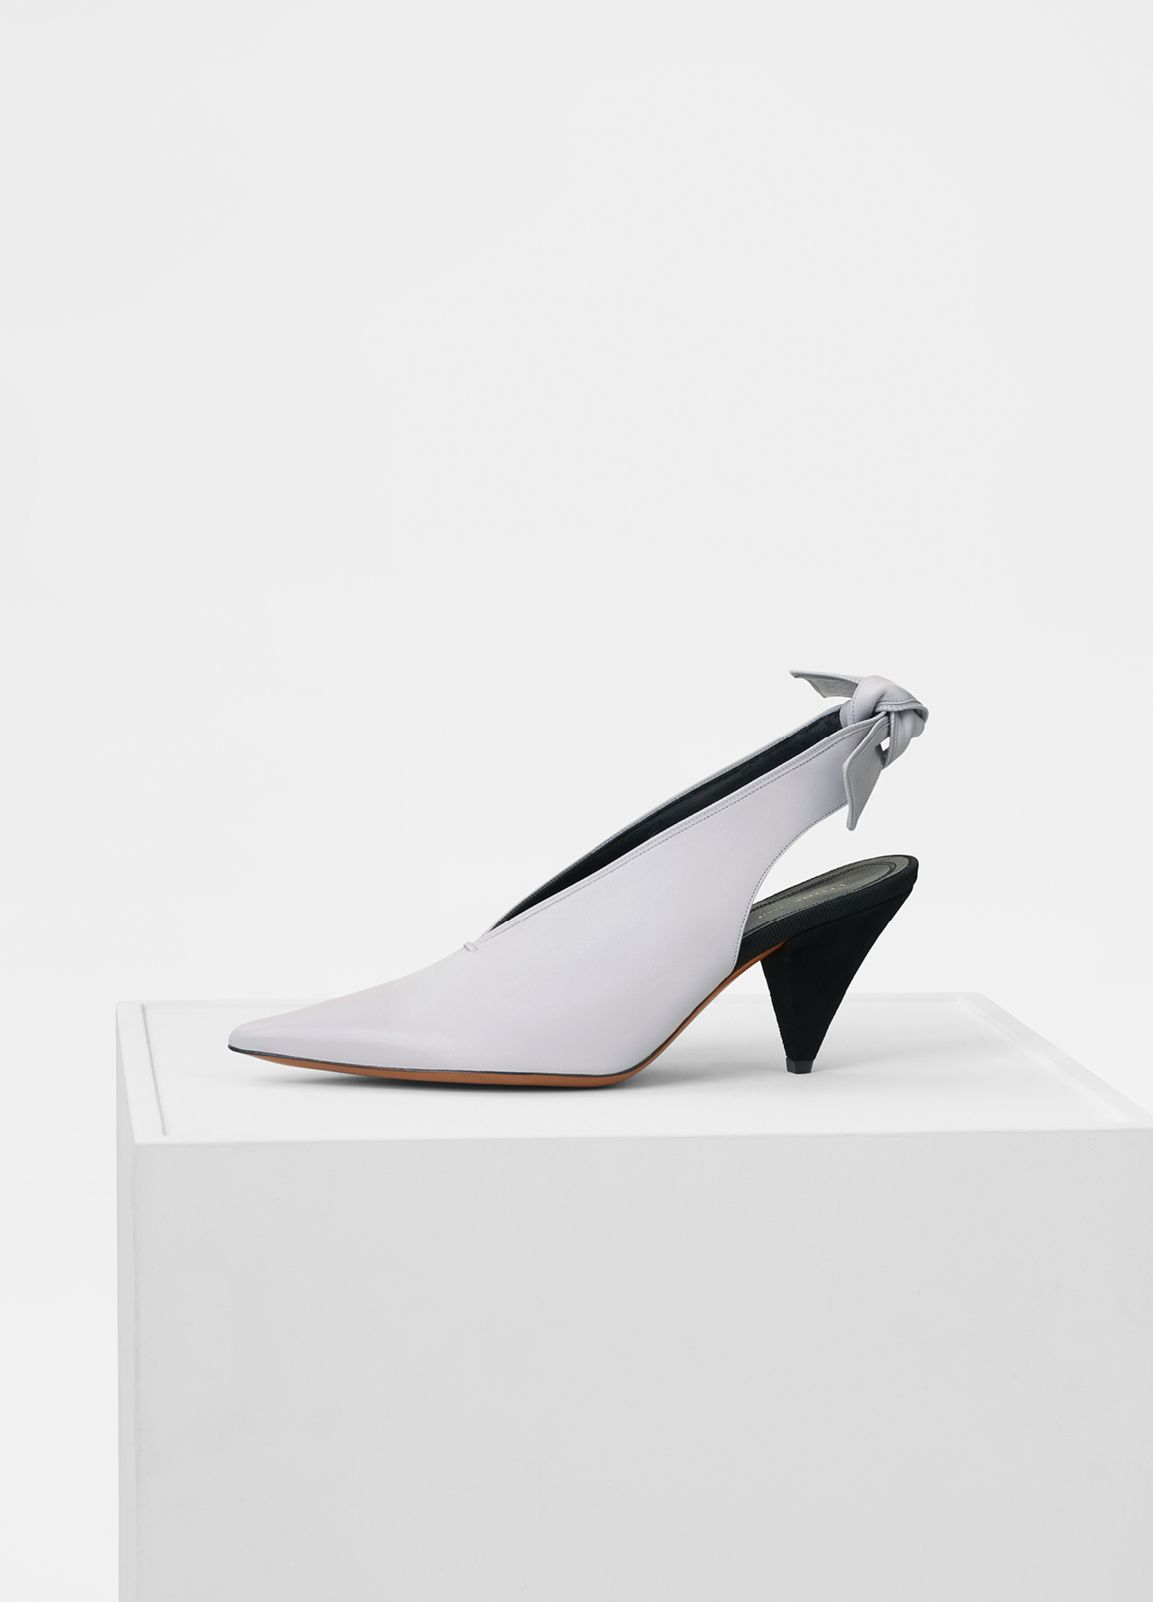 Soft V Neck Pump Slingback in Nappa Lambskin - Fall / Winter Collection 2017 | CÉLINE